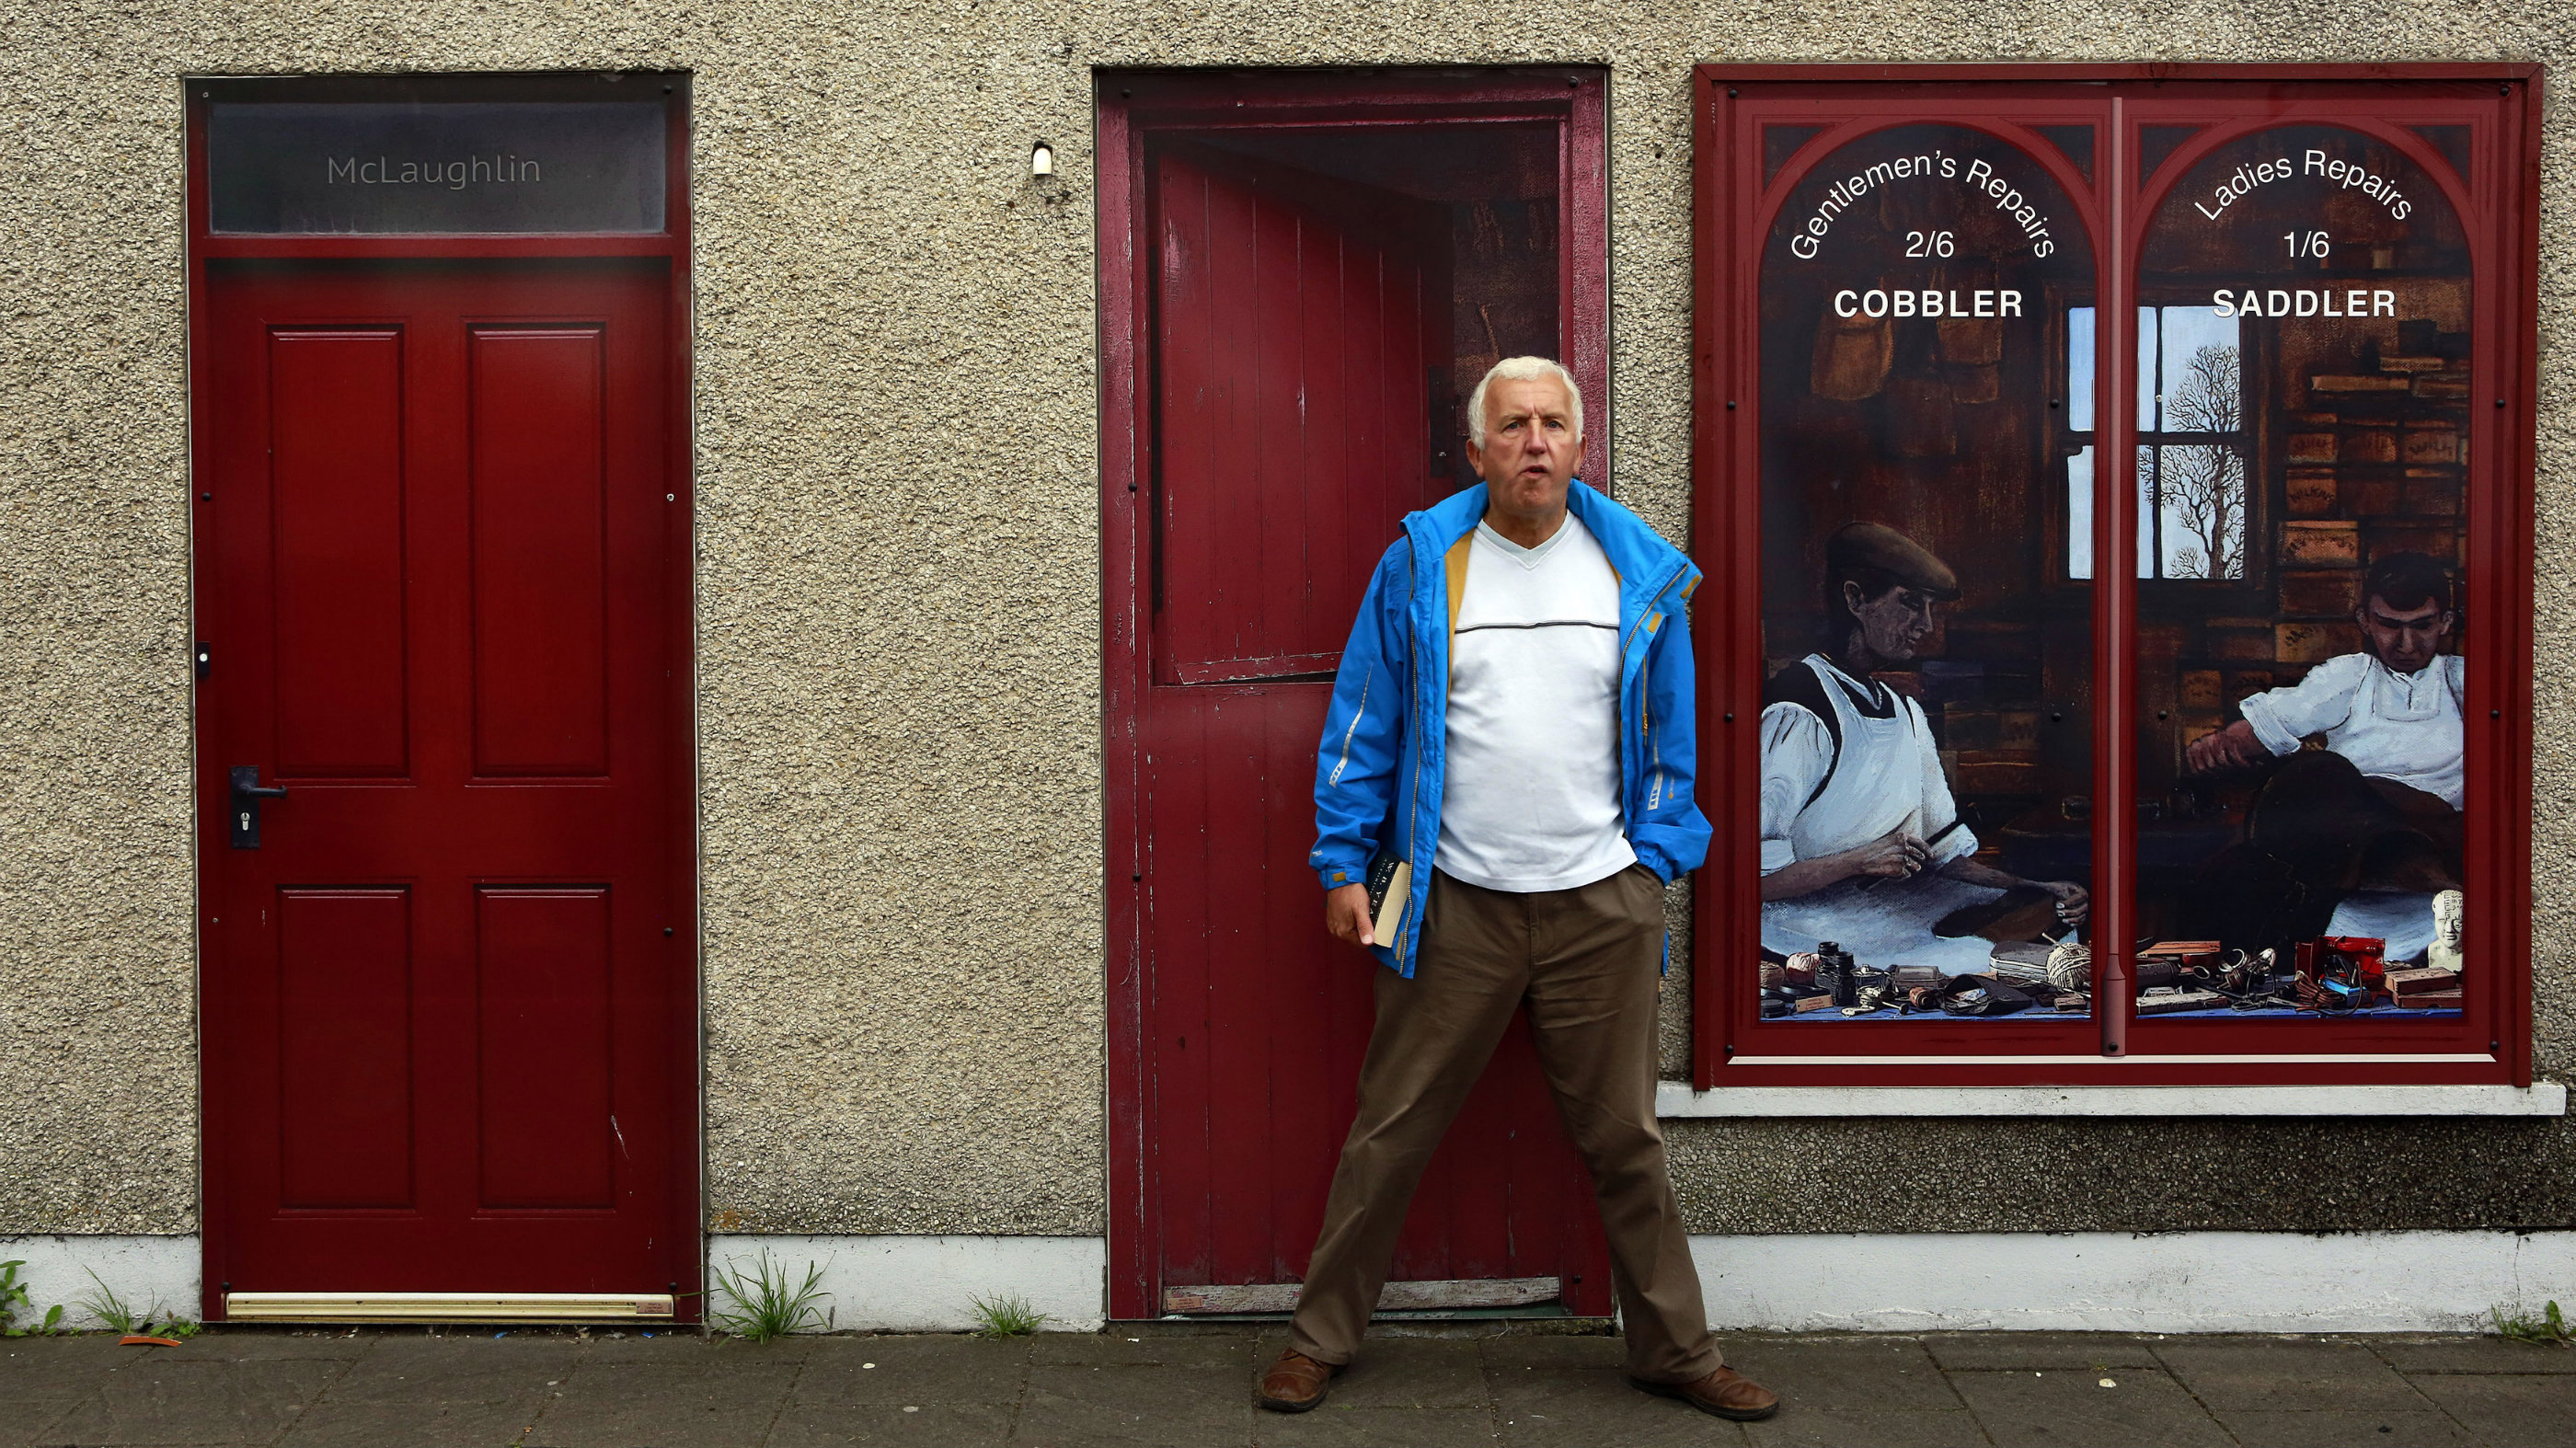 A man stands in front of an empty building, which has been covered with artwork to make it look more appealing, in the village of Bushmills on the Causeway Coast August 19, 2013. One of the homes of Irish whiskey has taken a scheme developed in Northern Ireland of erecting fake shop fronts where derelict buildings lie and has truly run with it in a bid to woo tourists. Bushmills, best known as the village where the whiskey of the same name was distilled for the first time 400 years ago, is now also becoming recognisable for the artwork and graphics that brighten up shop fronts left empty during the economic downturn.